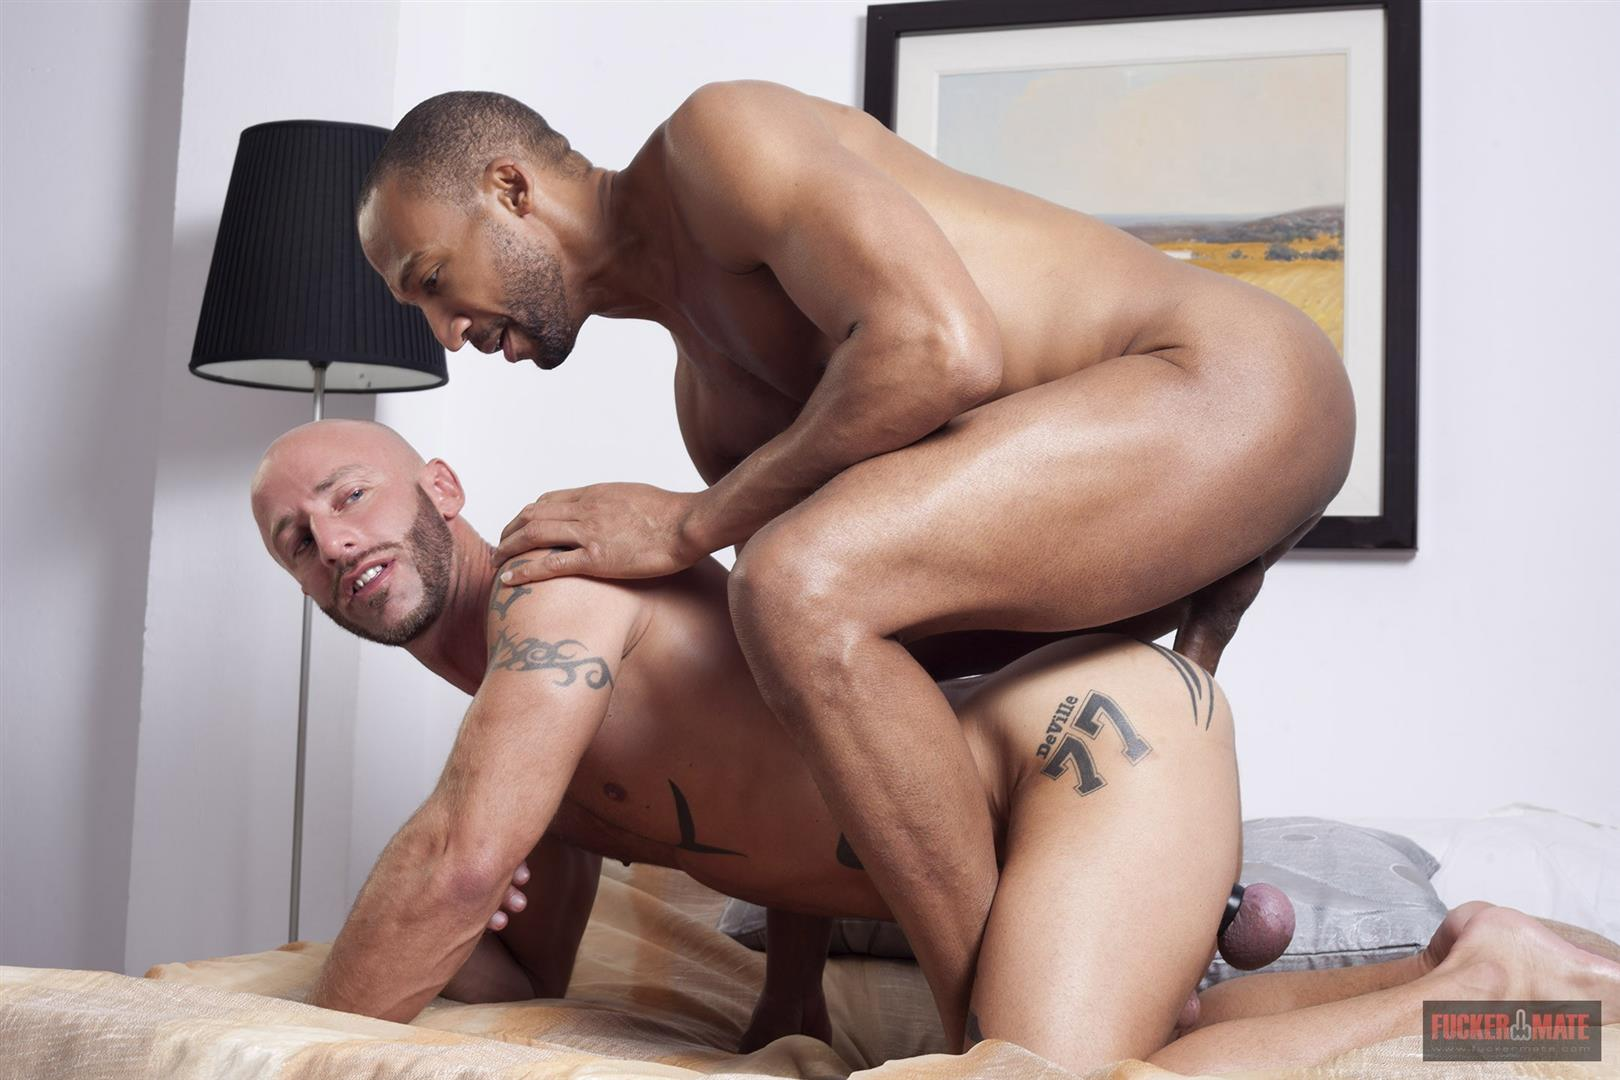 Interracial dvp mature gay